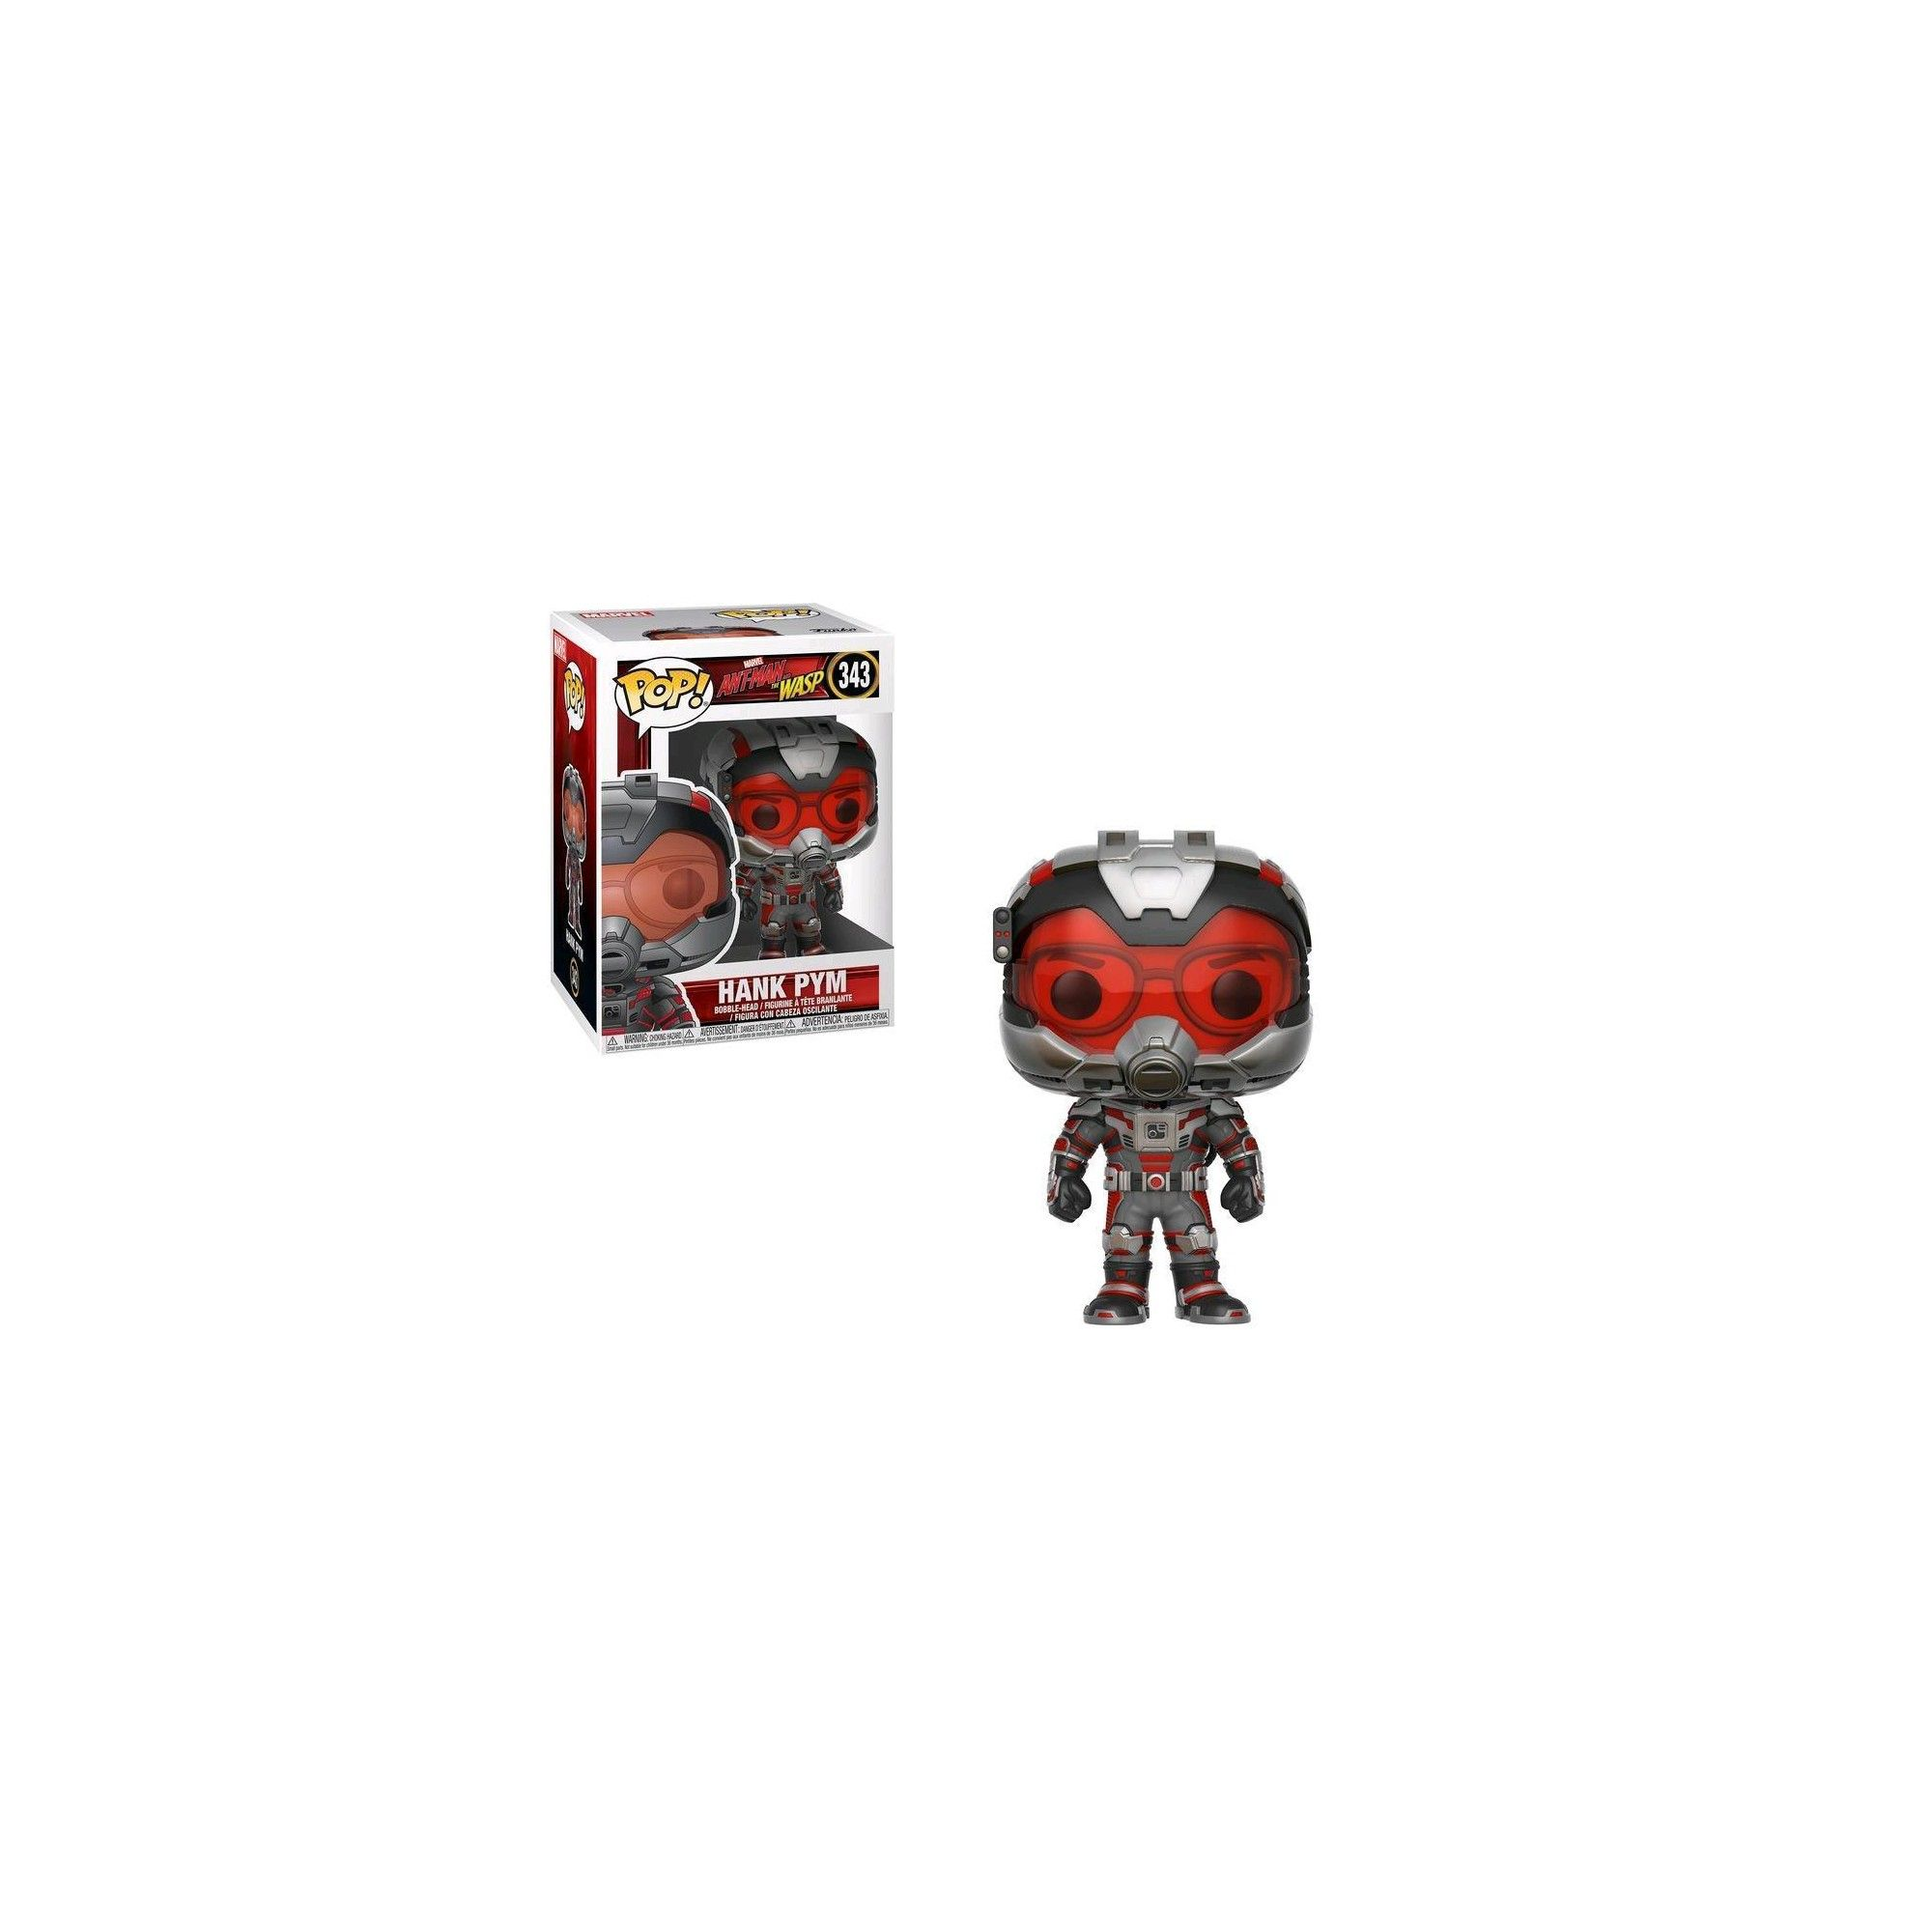 Ant-Man and the Wasp Hank Pym Collectible Figure Multicolor Funko Pop Marvel